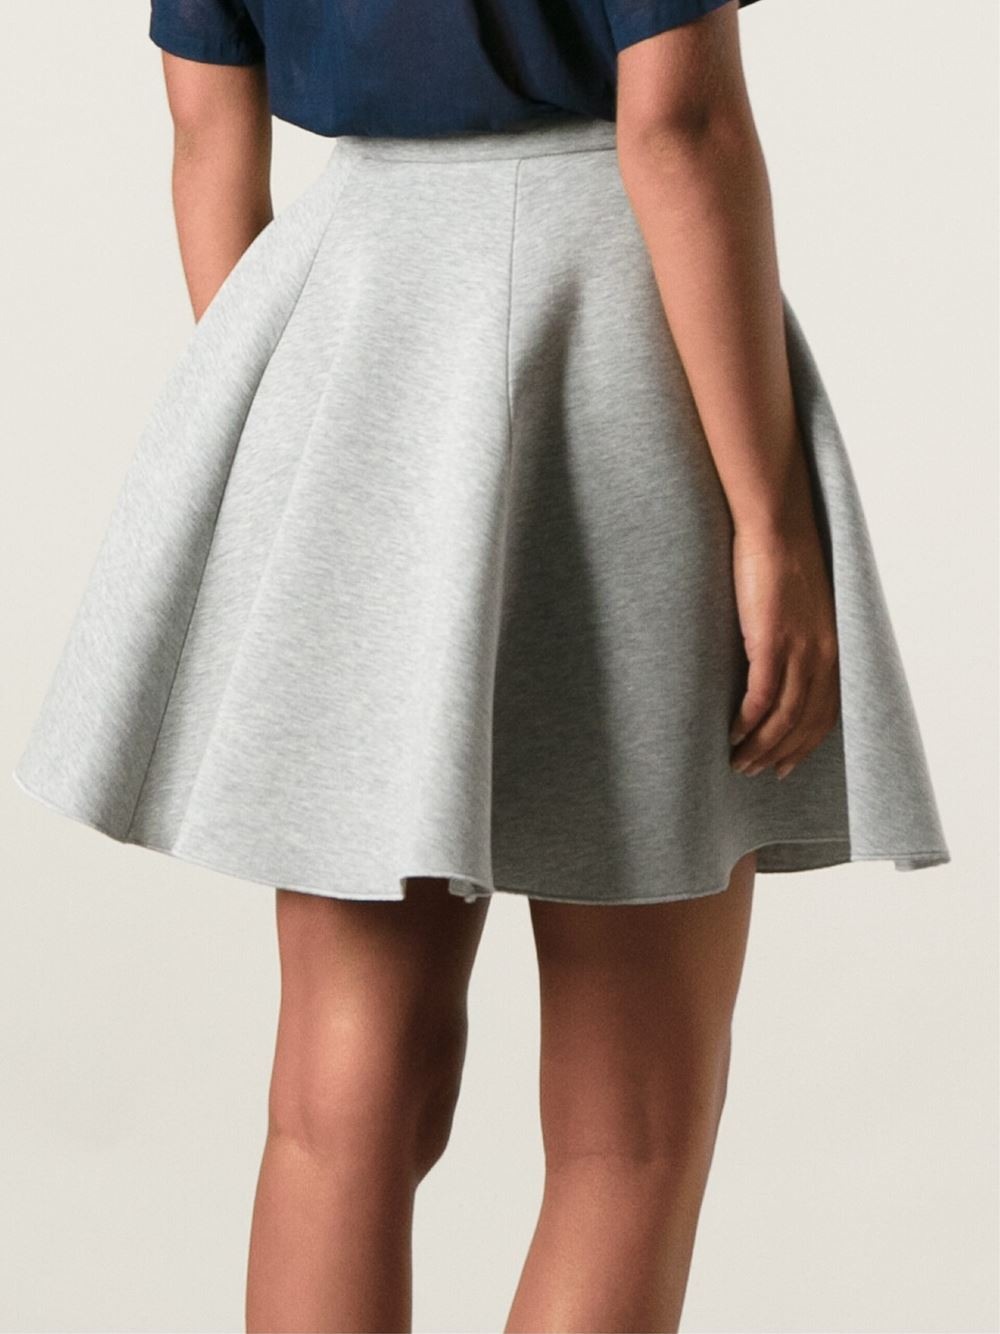 Msgm Flared Skirt in Gray | Lyst